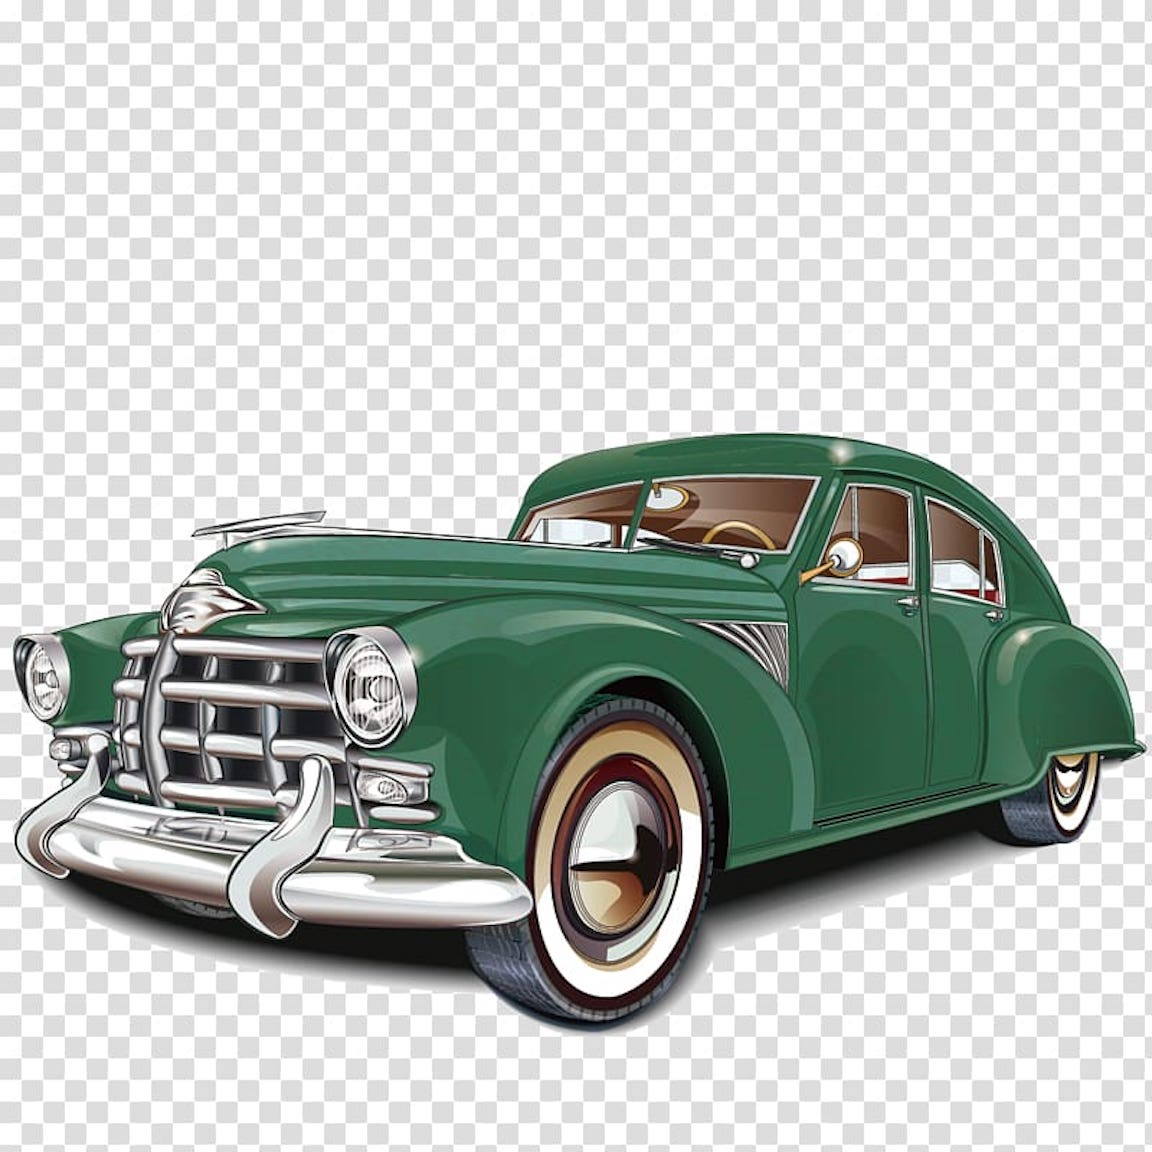 Car Clipart, Coloring Pages, And Other Free Printable.